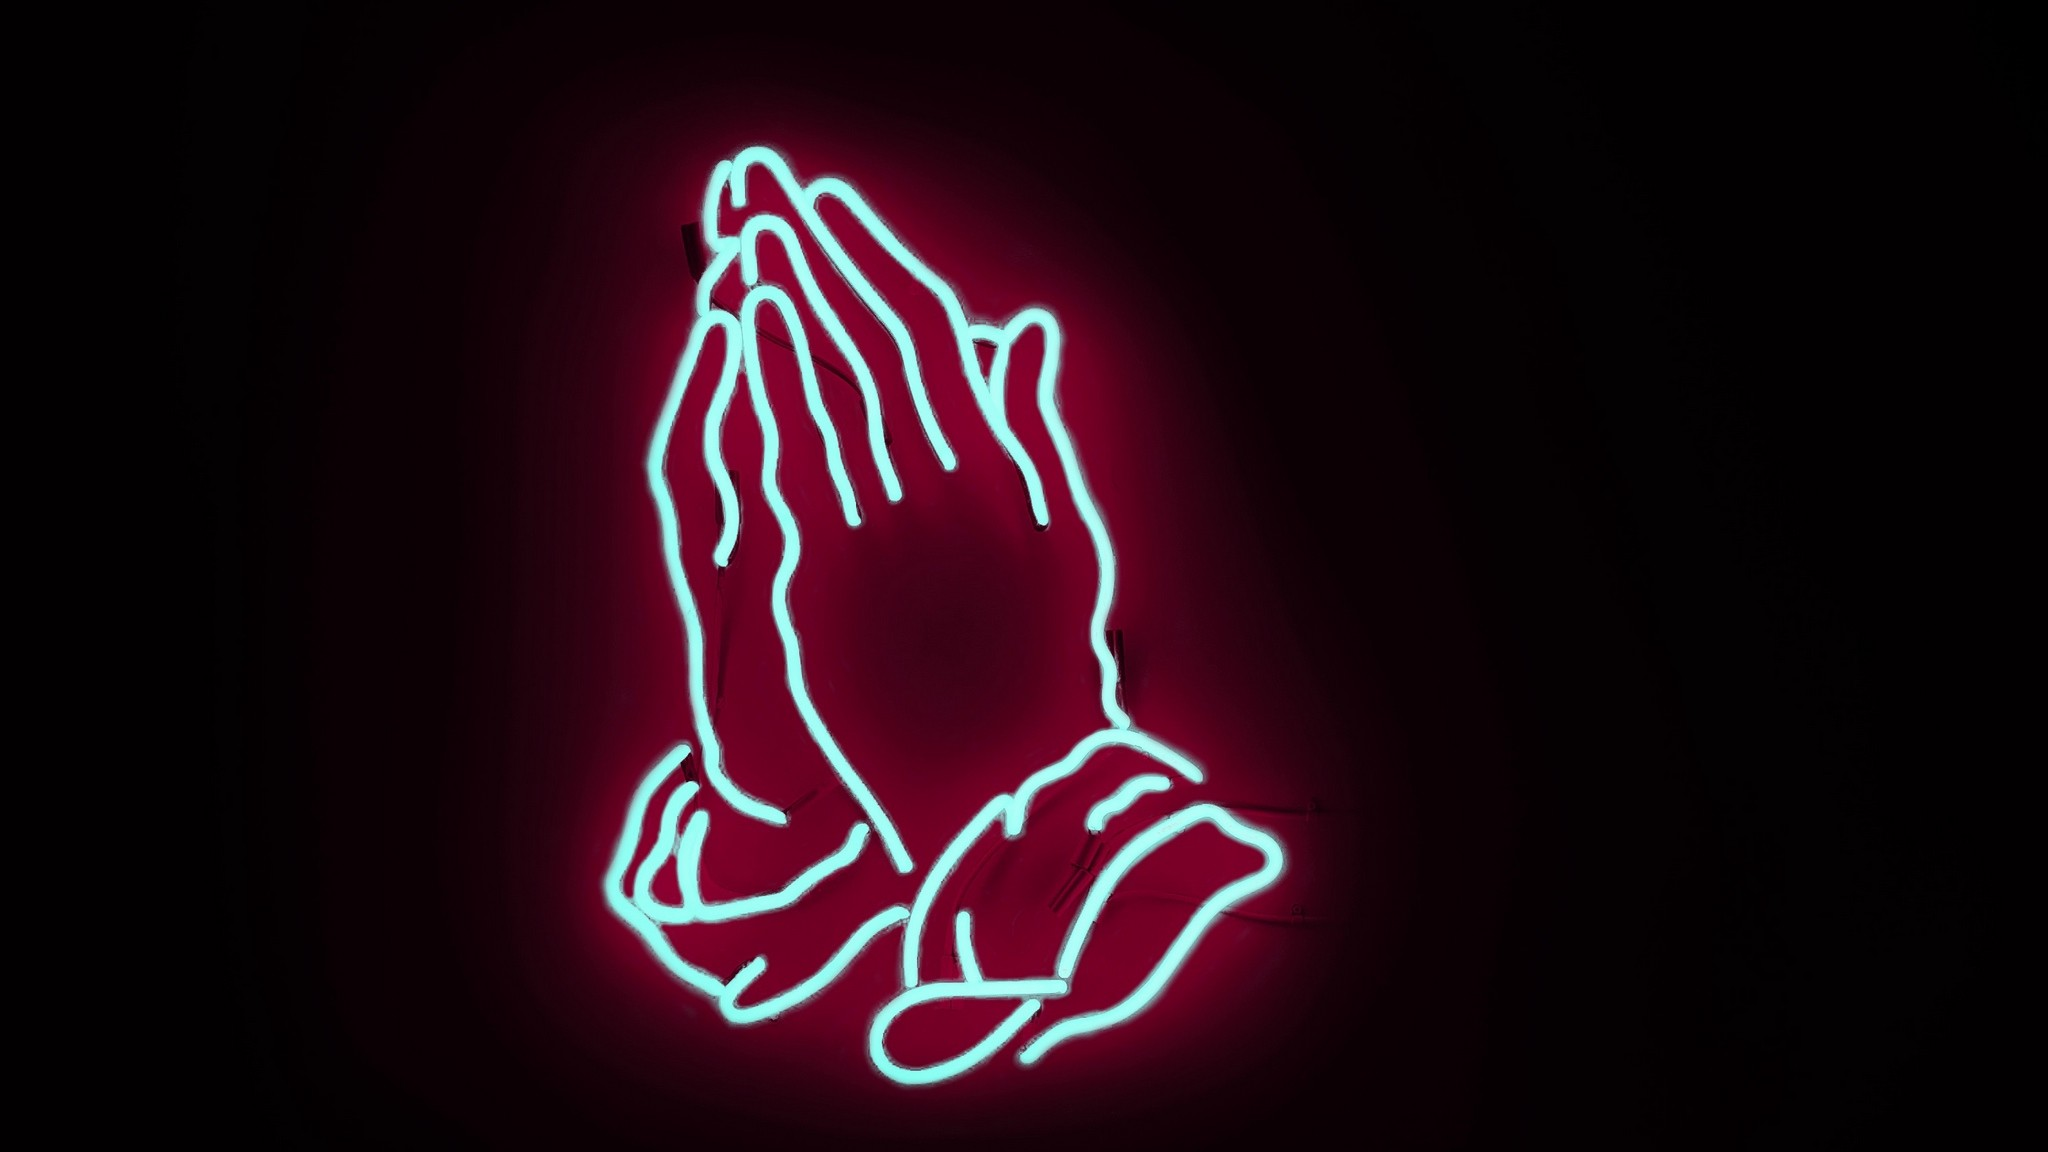 57 Praying Hands Wallpapers on WallpaperPlay 2048x1152